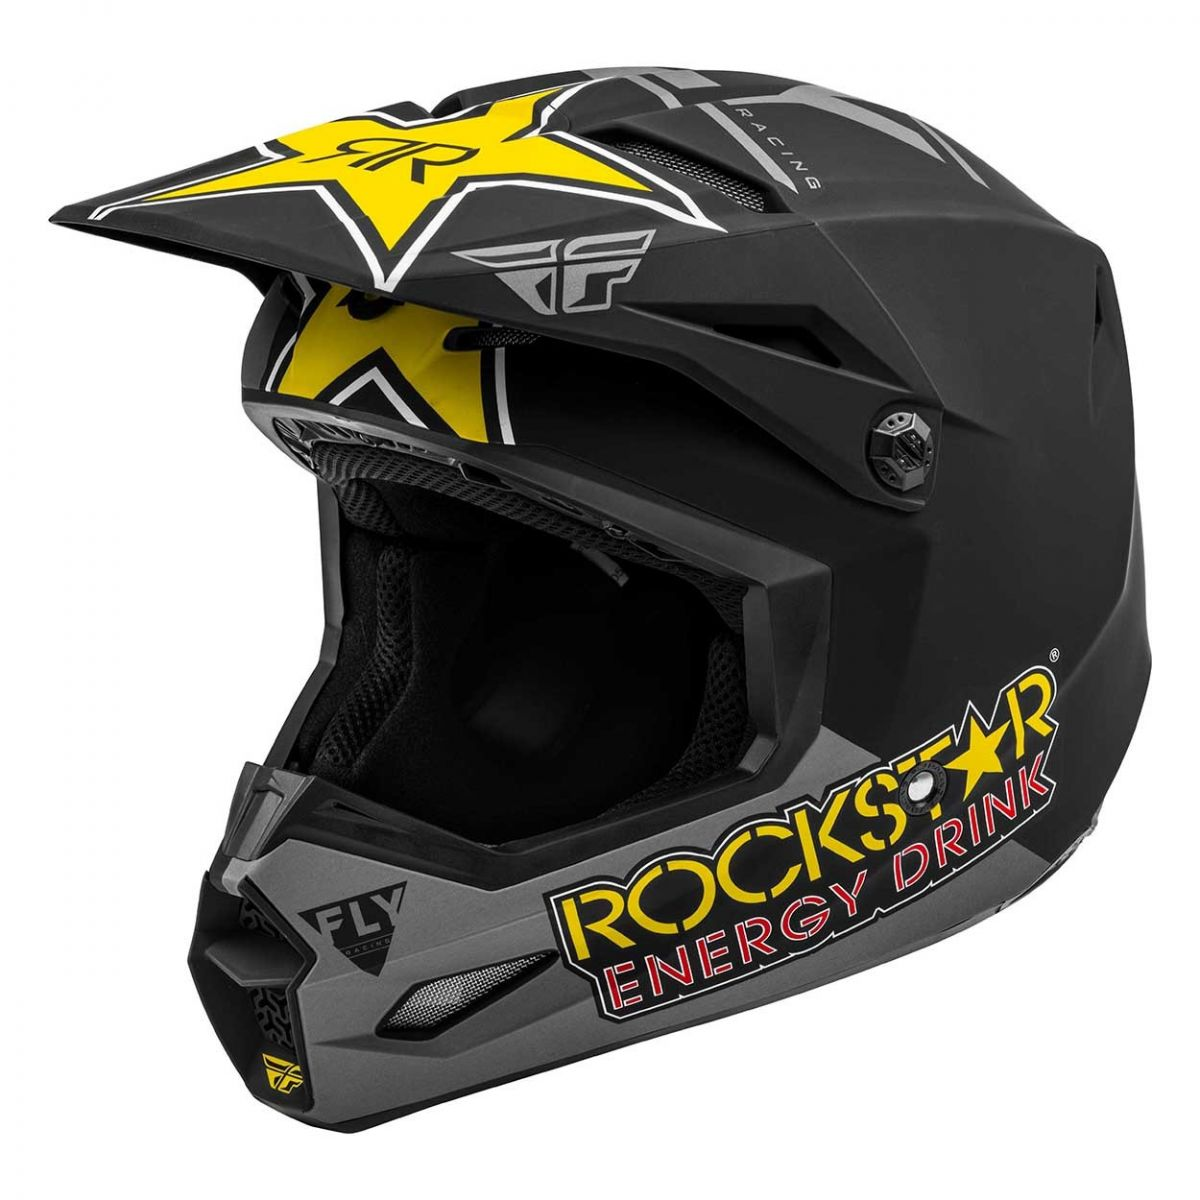 Fly Racing 2021 Kinetic Rockstar Matte Black/Grey/Yellow шлем внедорожный